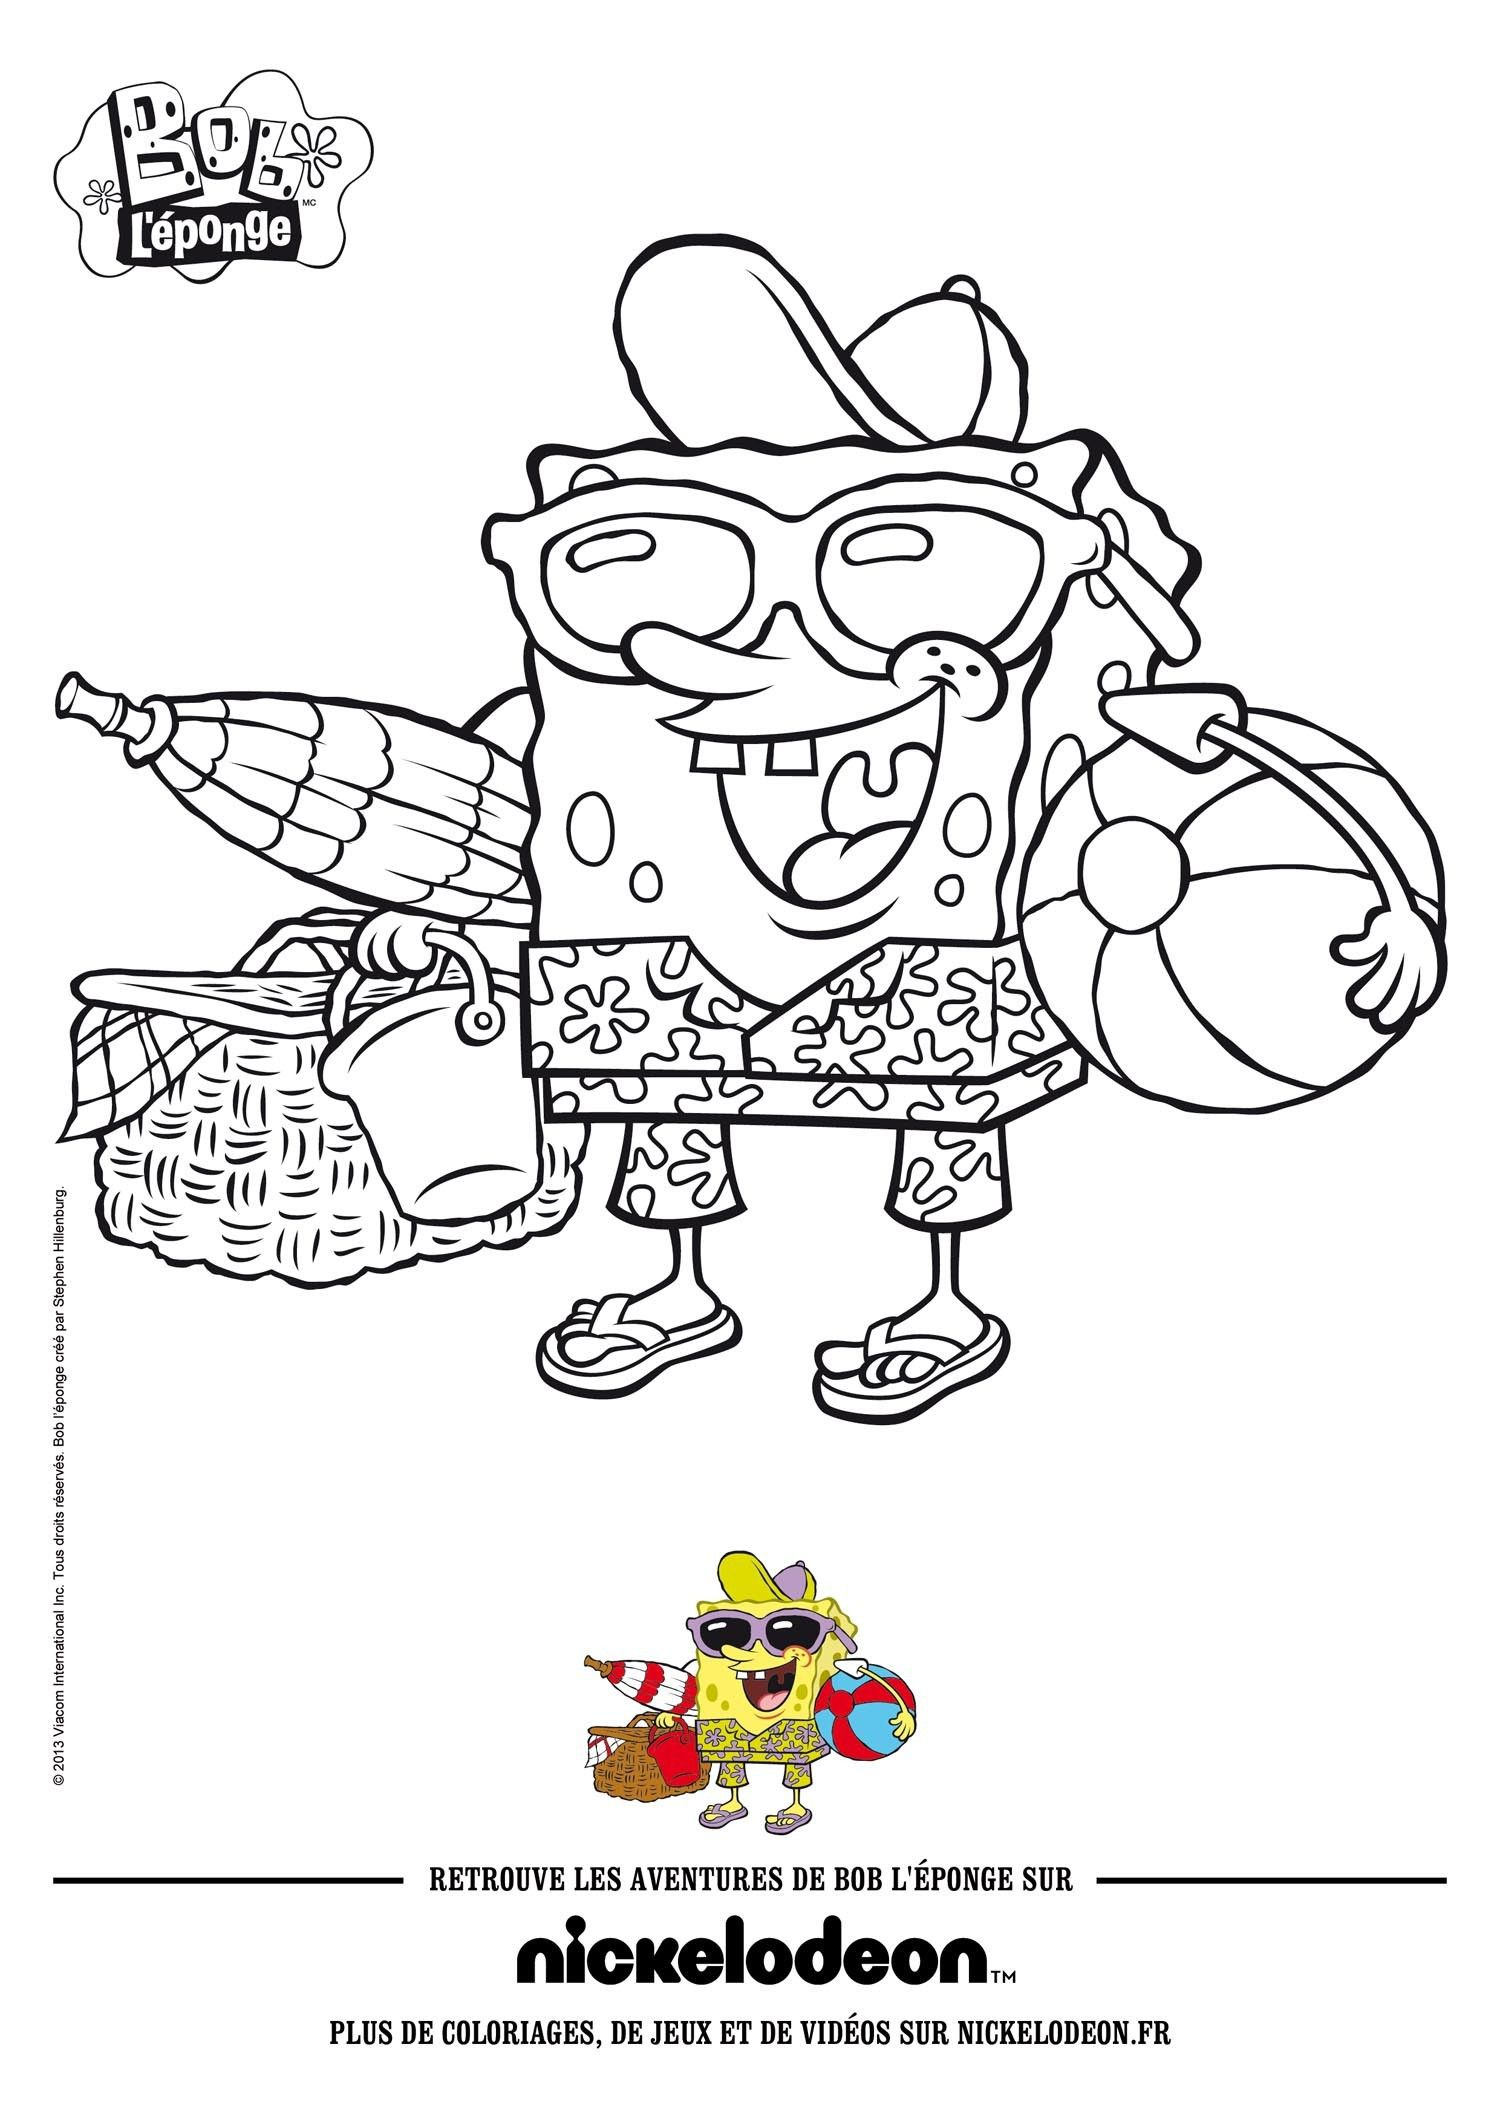 Spongebob Squarepants Coloring Pages Hellokids From The